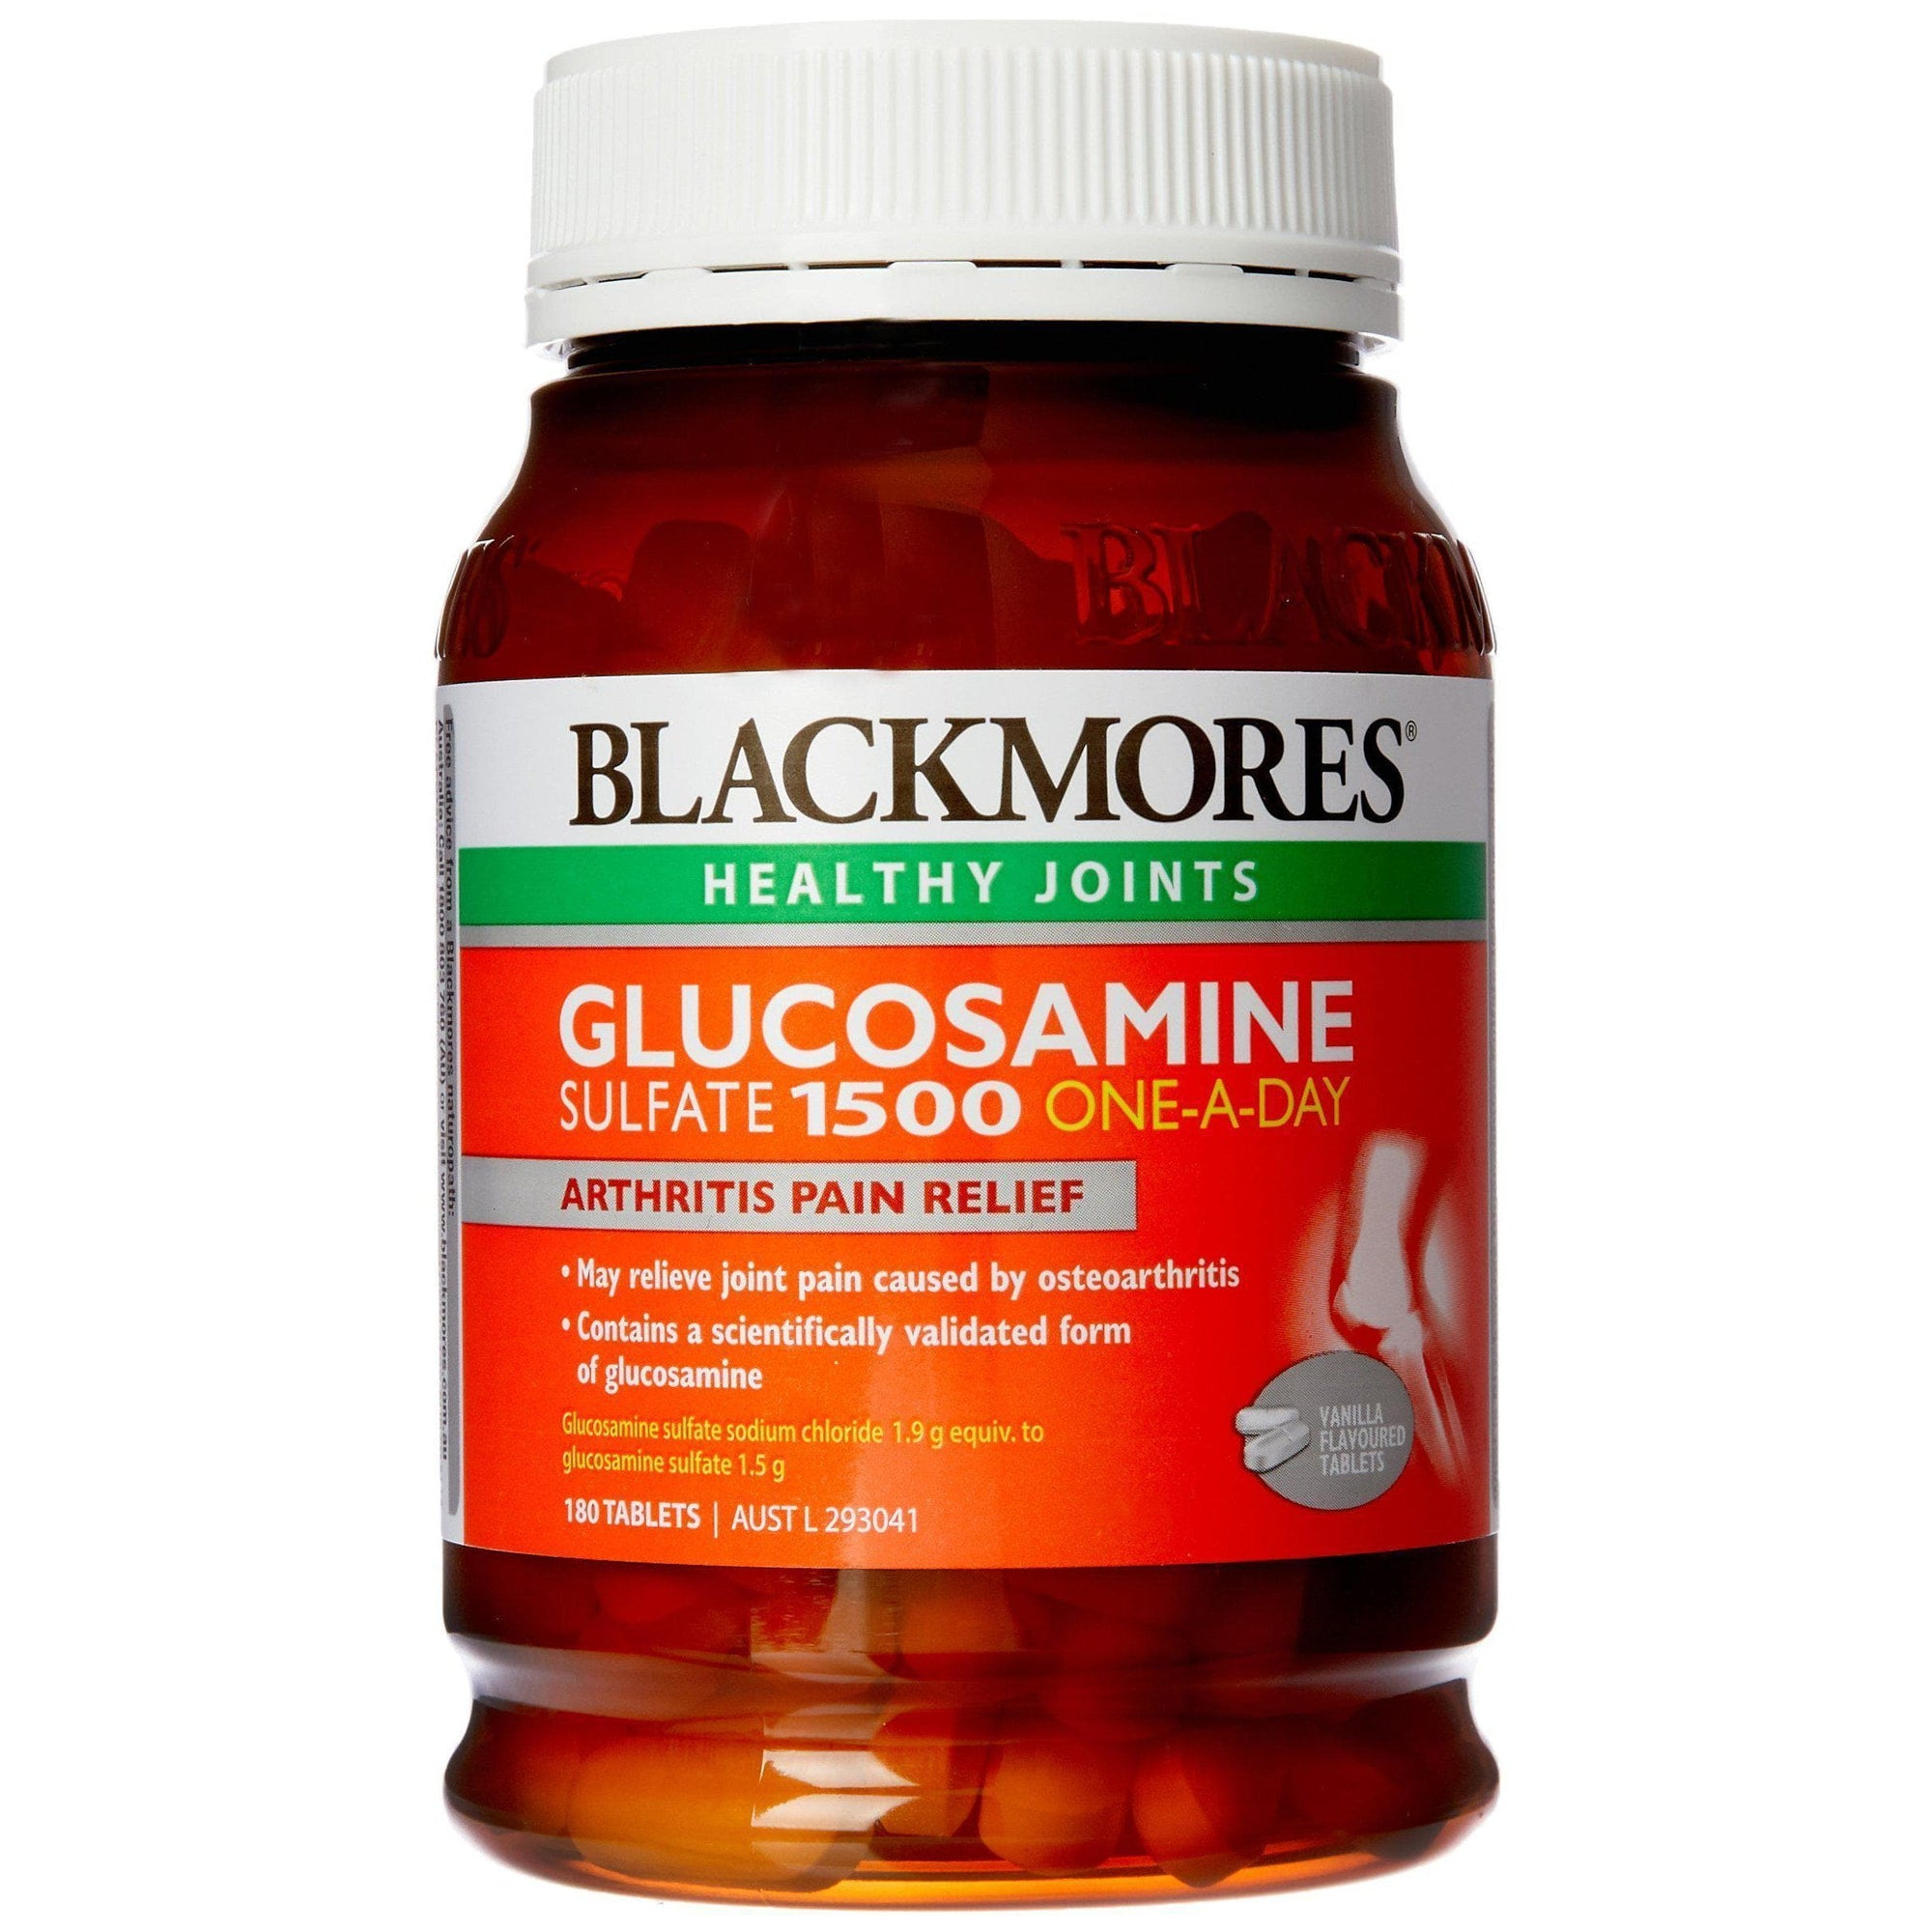 Blackmores Glucosamine Sulfate 1500 One-A-Day (180 Tablets)-Curavita